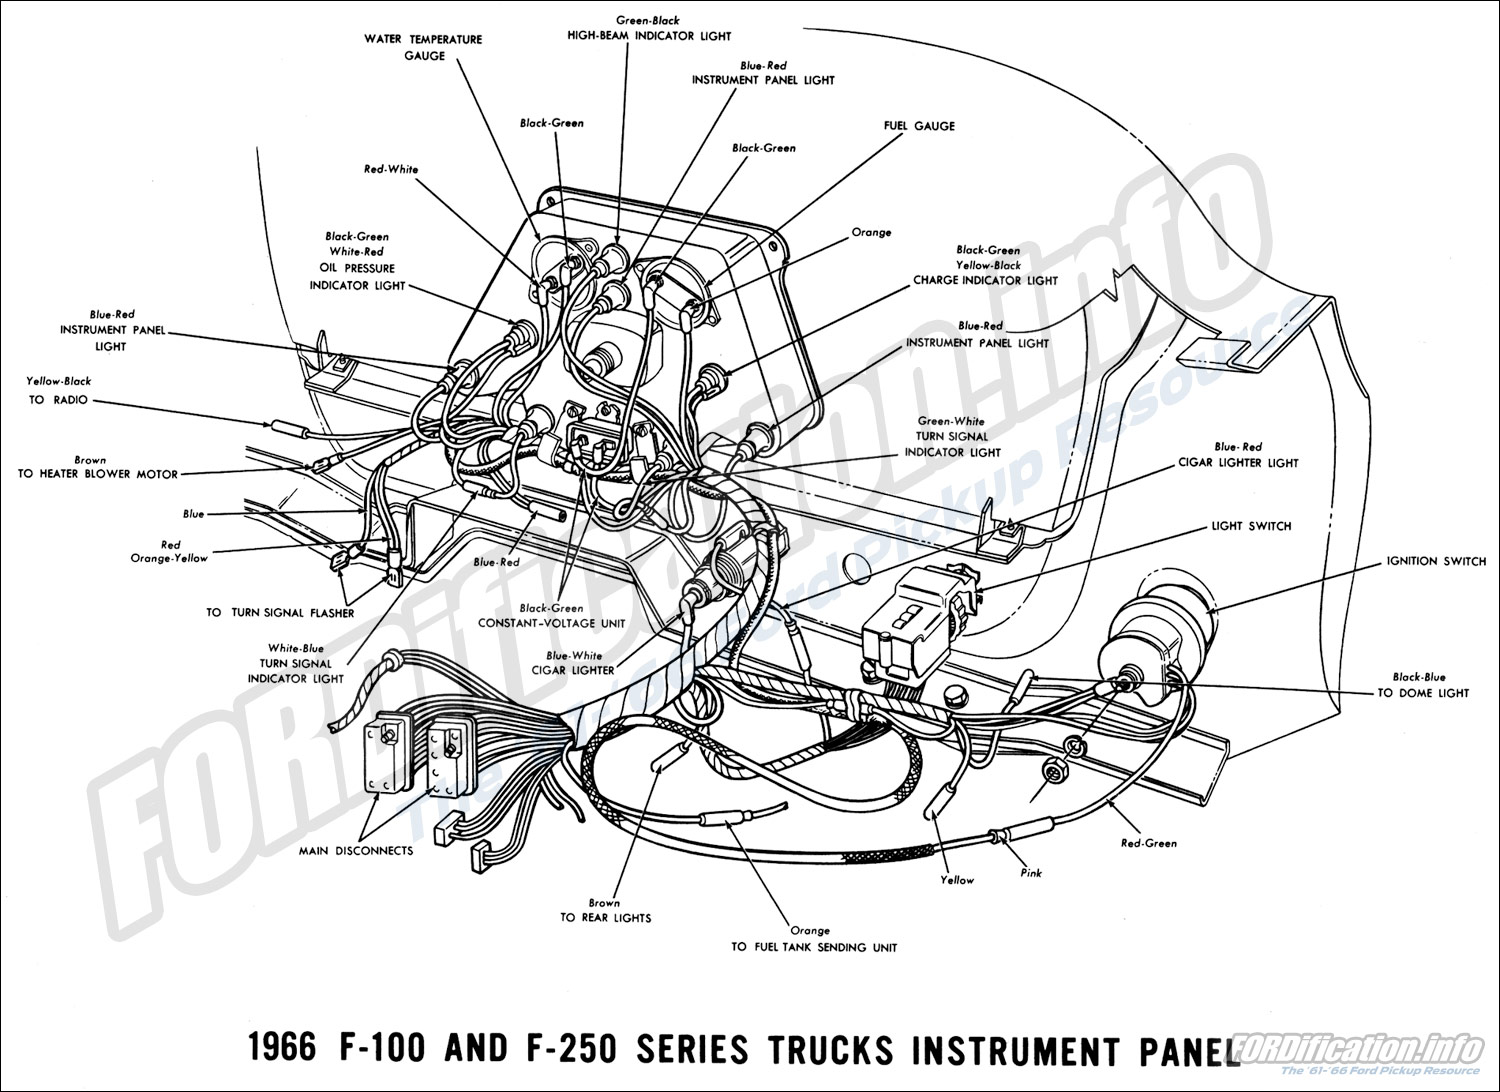 WRG-9914] 1956 Ford F100 Dash Gauges Wiring Diagram All About on